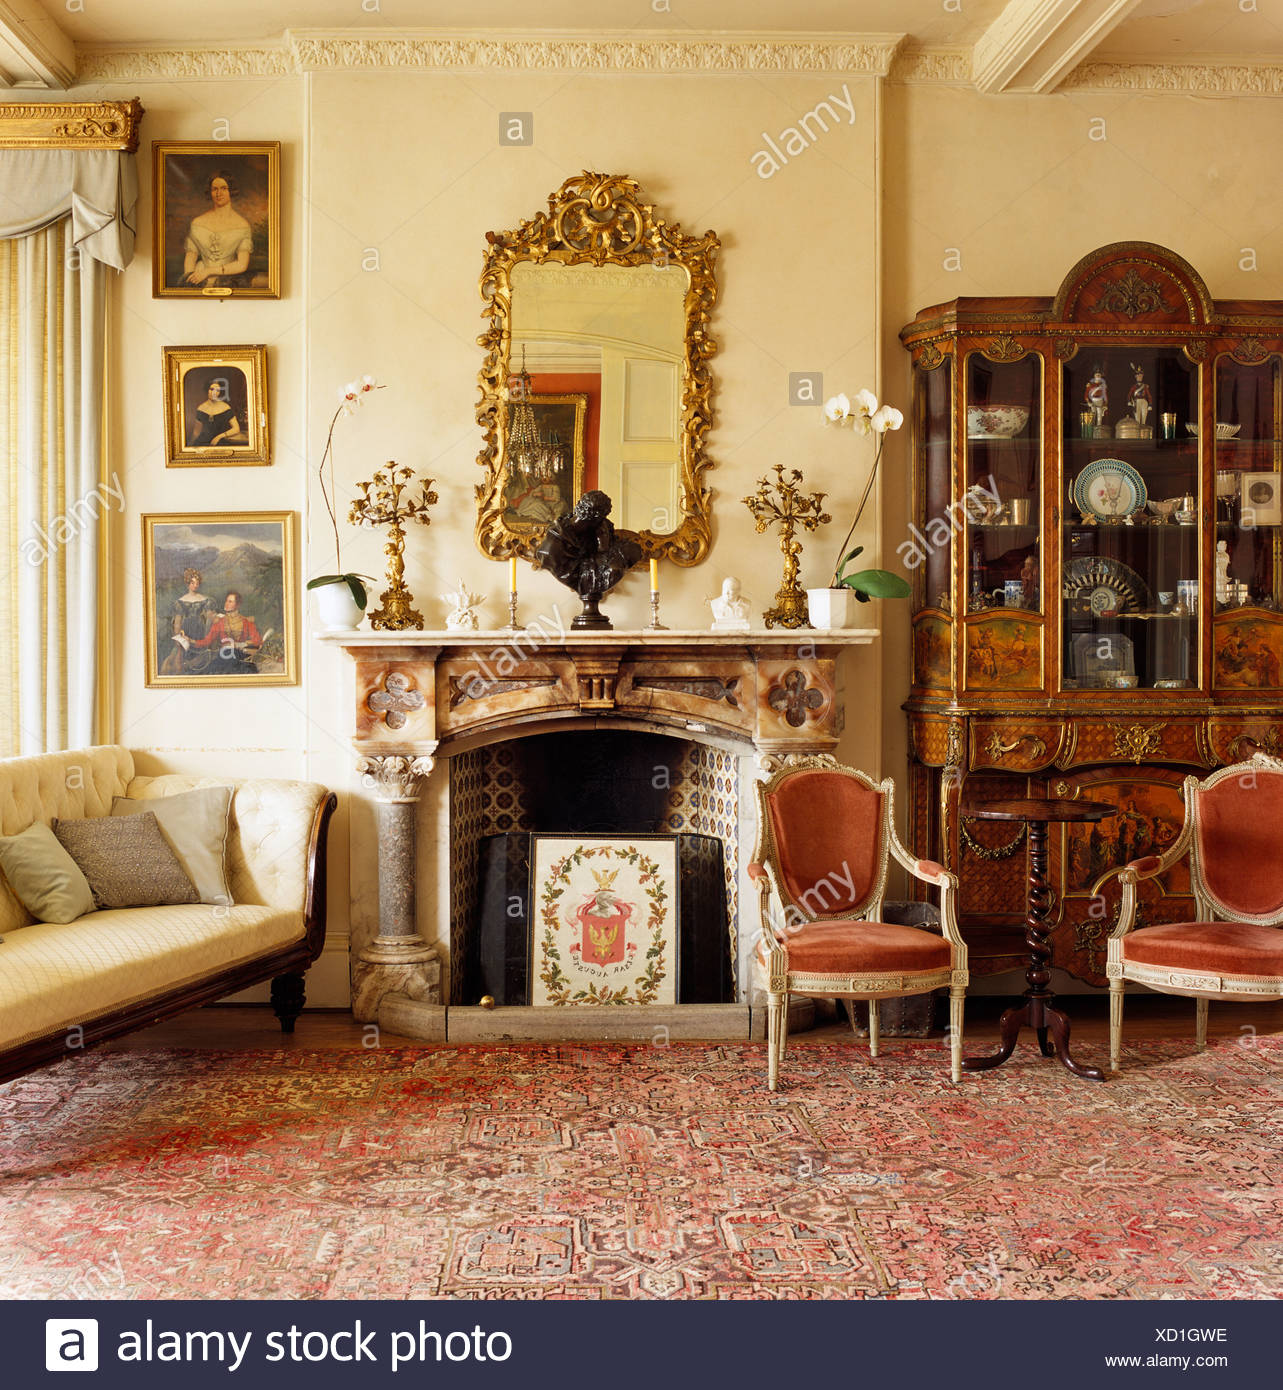 Incroyable Antique Cabinet And French Style Chairs In Drawing Room With Large Gilt  Mirror Above Ornate Fireplace